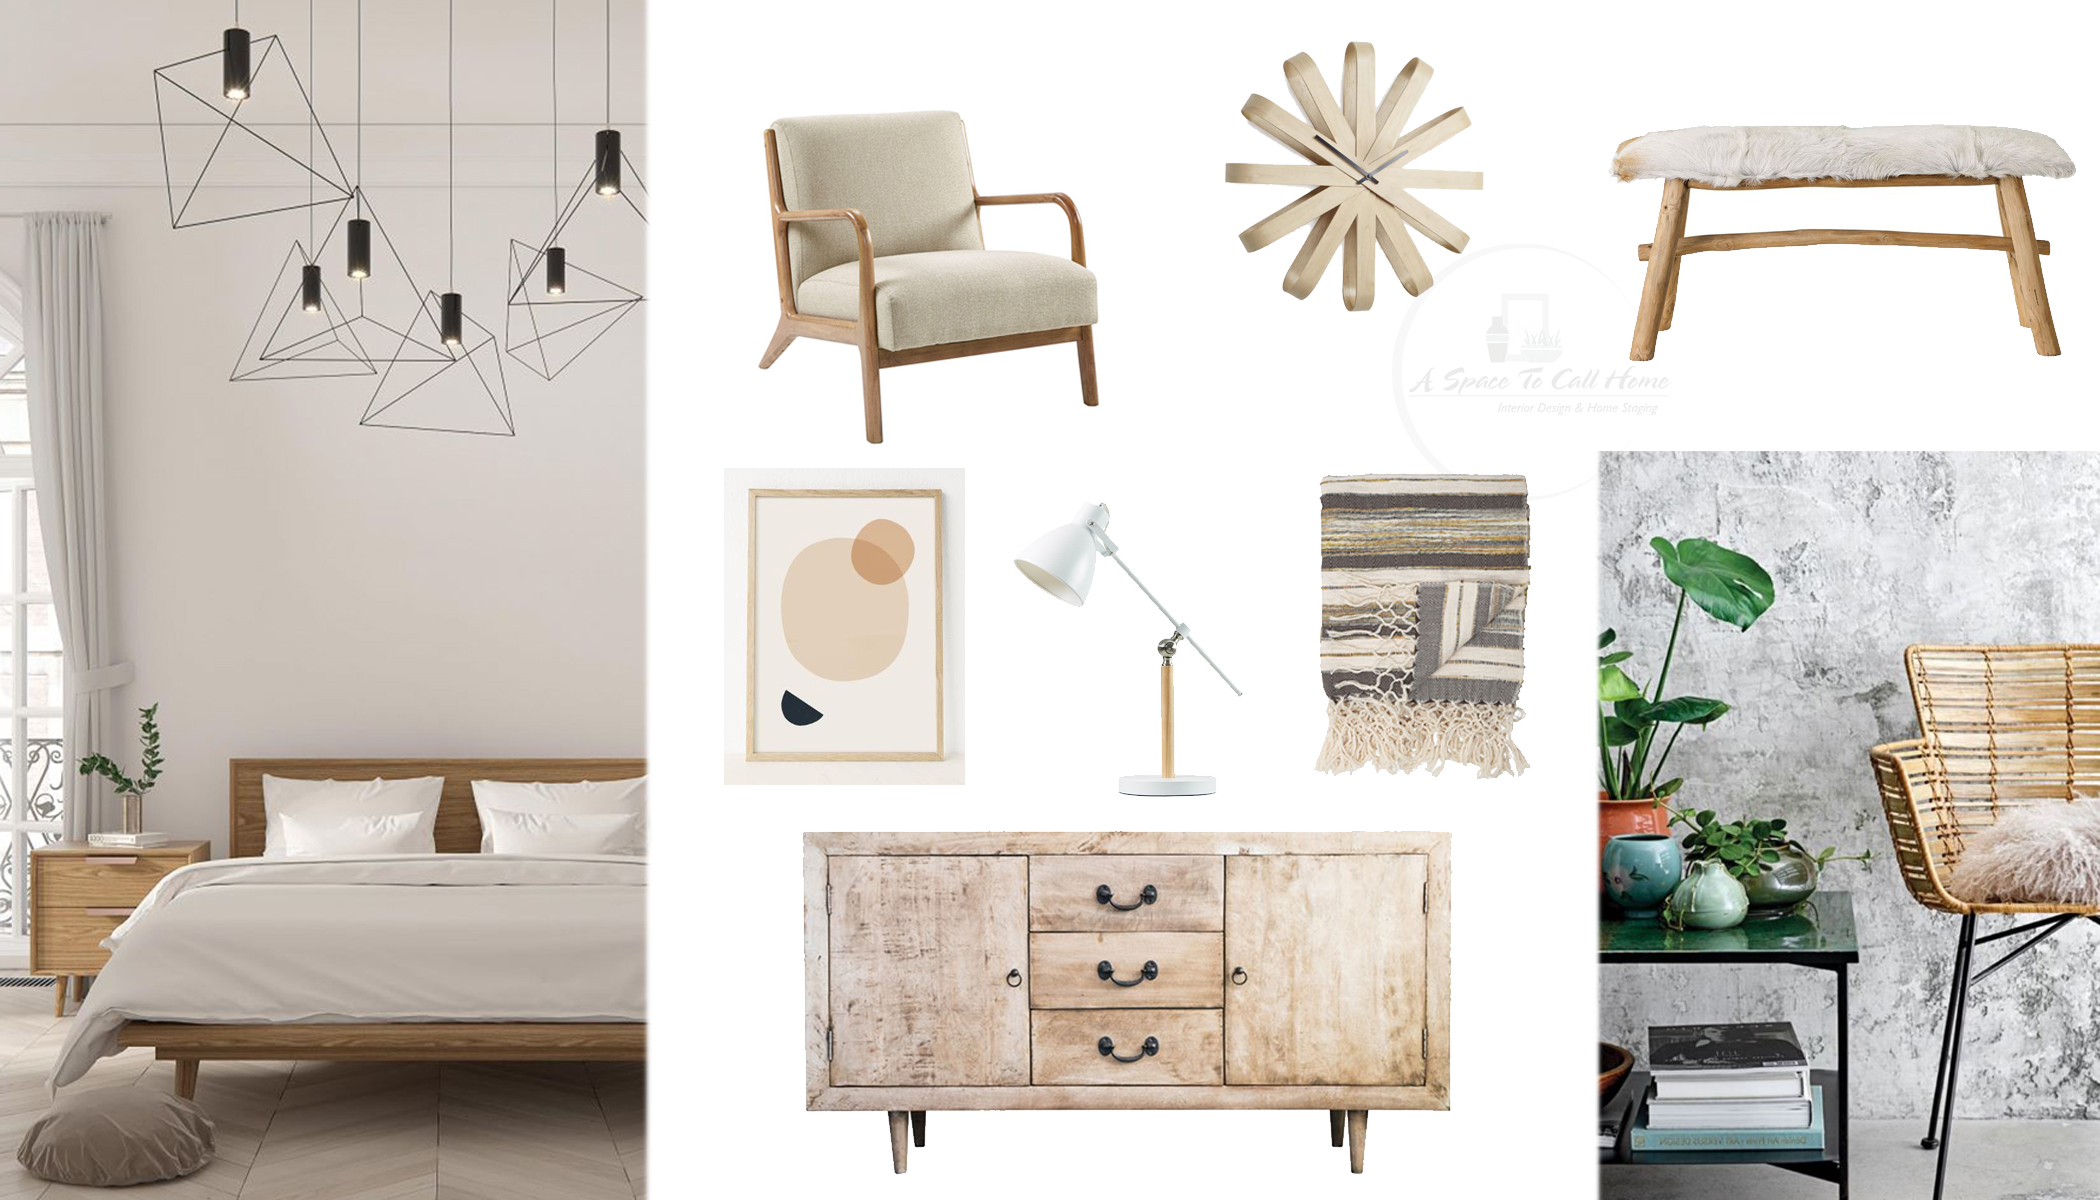 Signature Design Style Results - Scandinavian